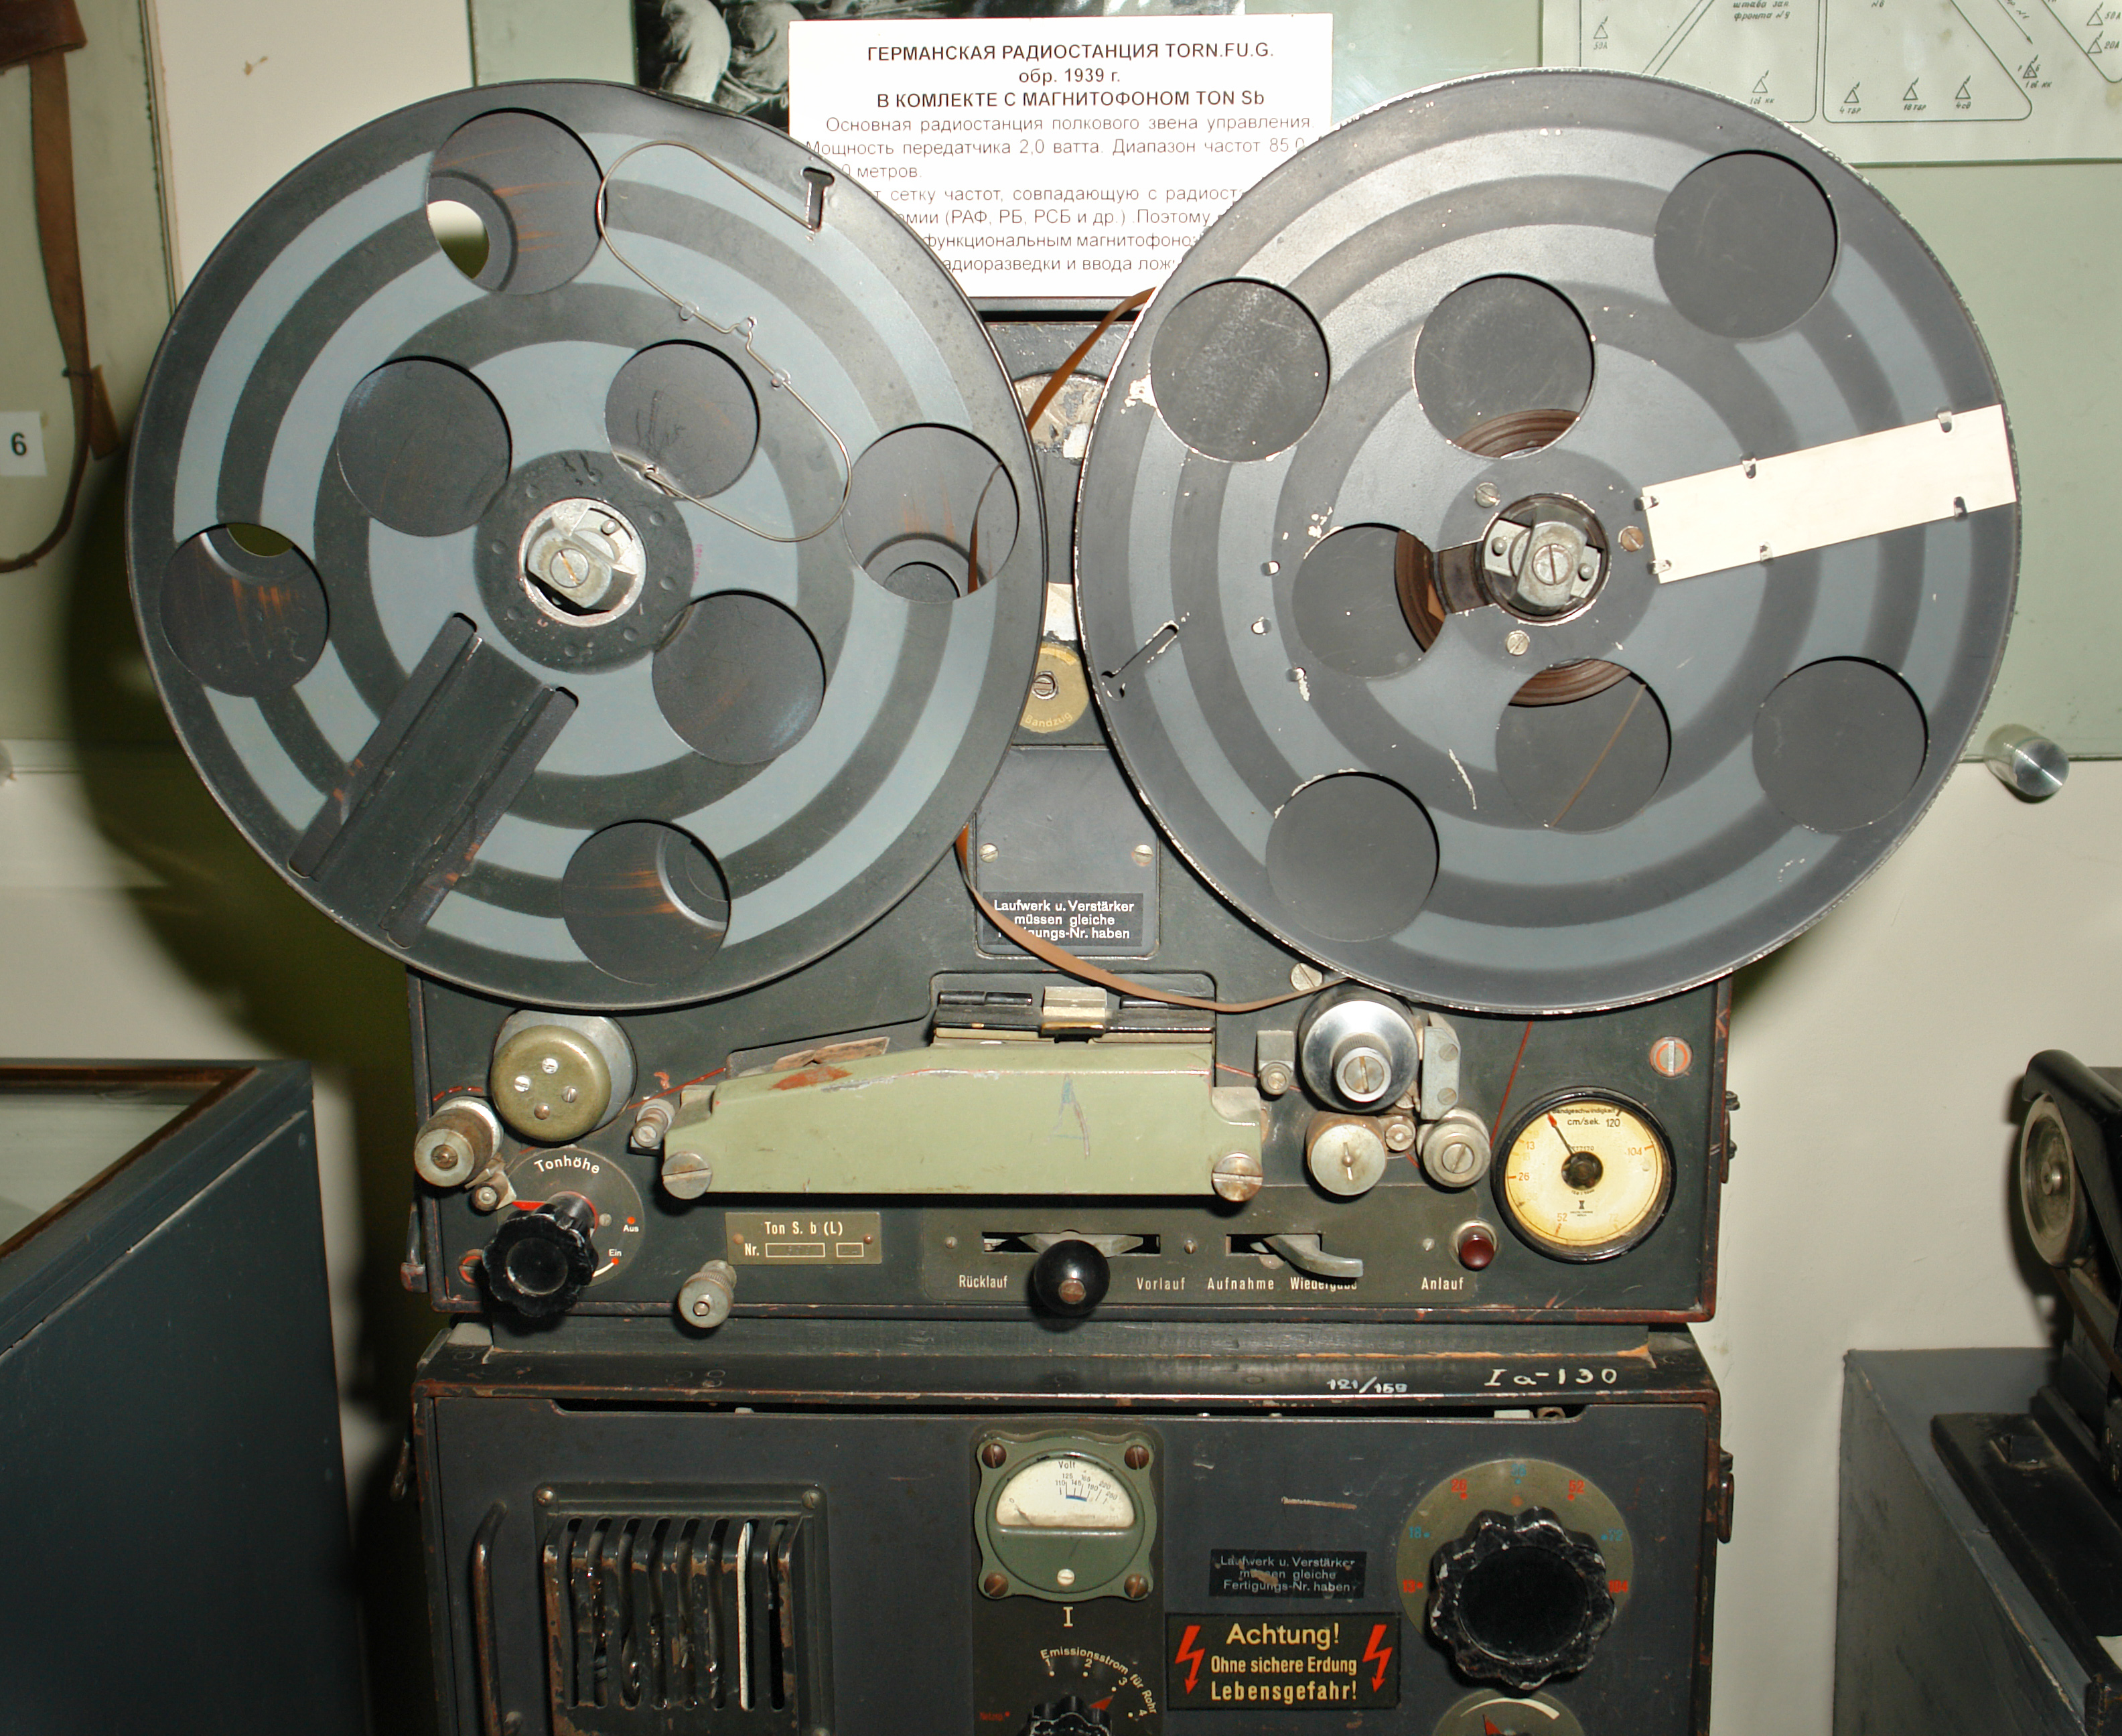 https://upload.wikimedia.org/wikipedia/commons/0/0f/Ton_S.b,_tape_unit.jpg